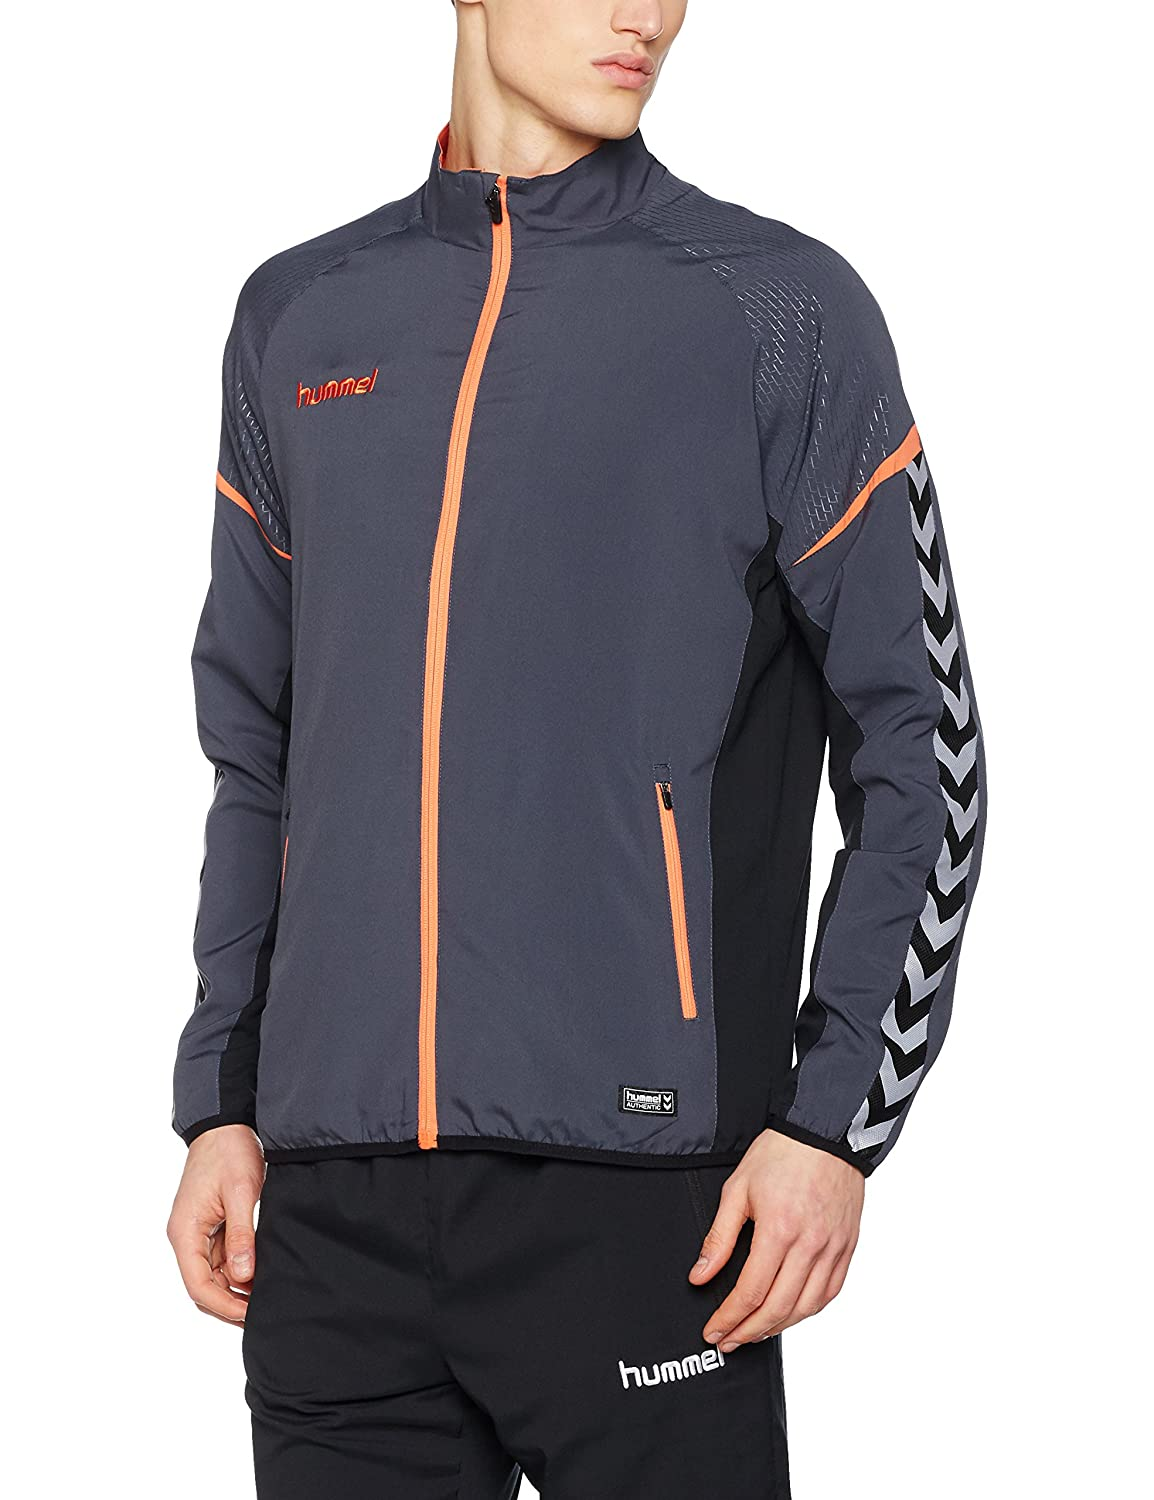 TALLA S. Hummel Veste Micro Authentic Charge